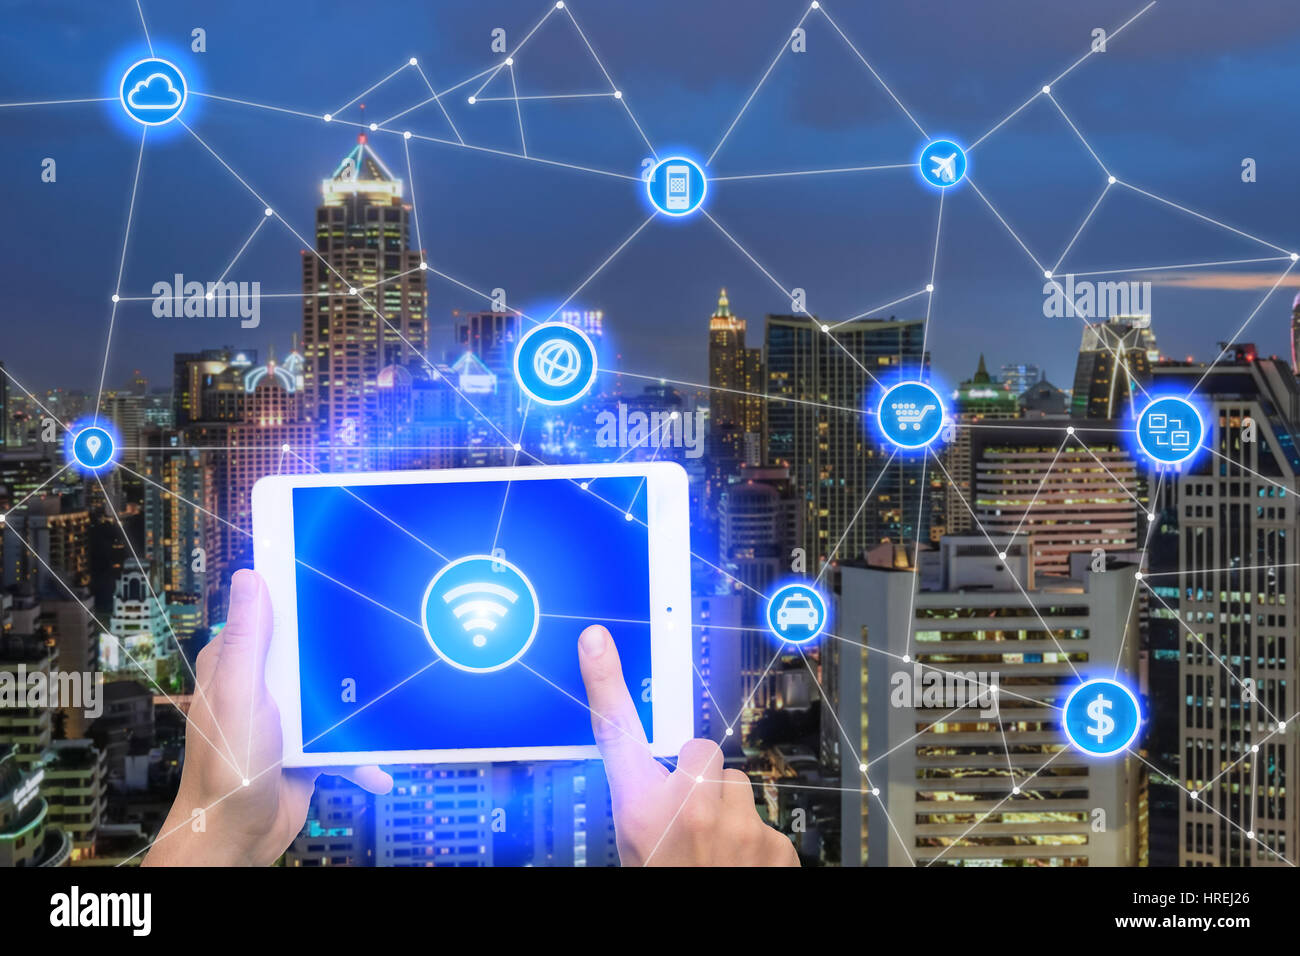 Network of connect digital tablet with wireless communication network, business district with office building, abstract - Stock Image